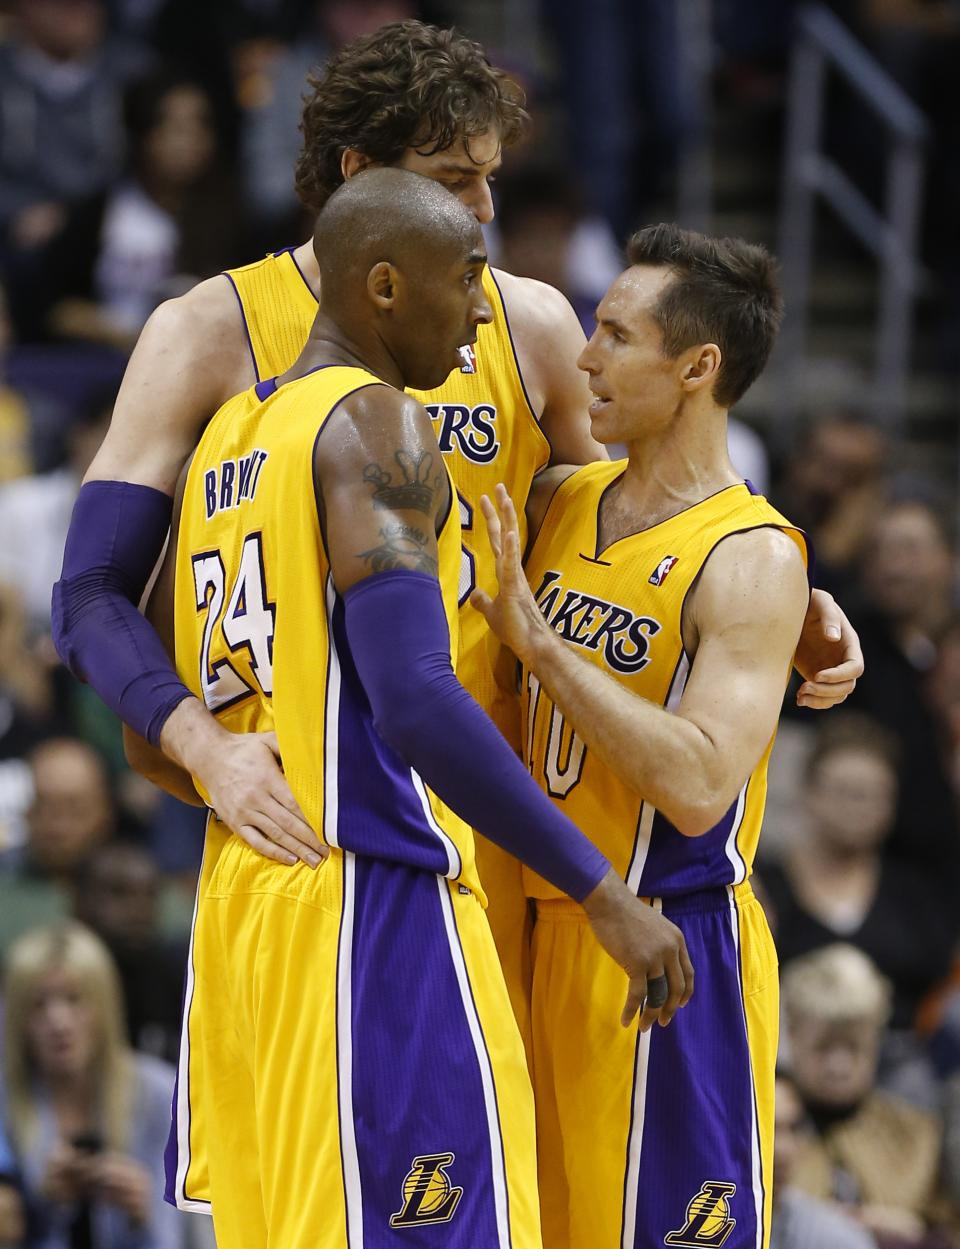 Los Angeles Lakers' Steve Nash, right, Kobe Bryant (24) and Pau Gasol, of Spain, talk during a timeout against the Phoenix Suns during the second half of an NBA basketball game, Wednesday, Jan. 30, 2013, in Phoenix. The Suns won 92-86. (AP Photo/Matt York)